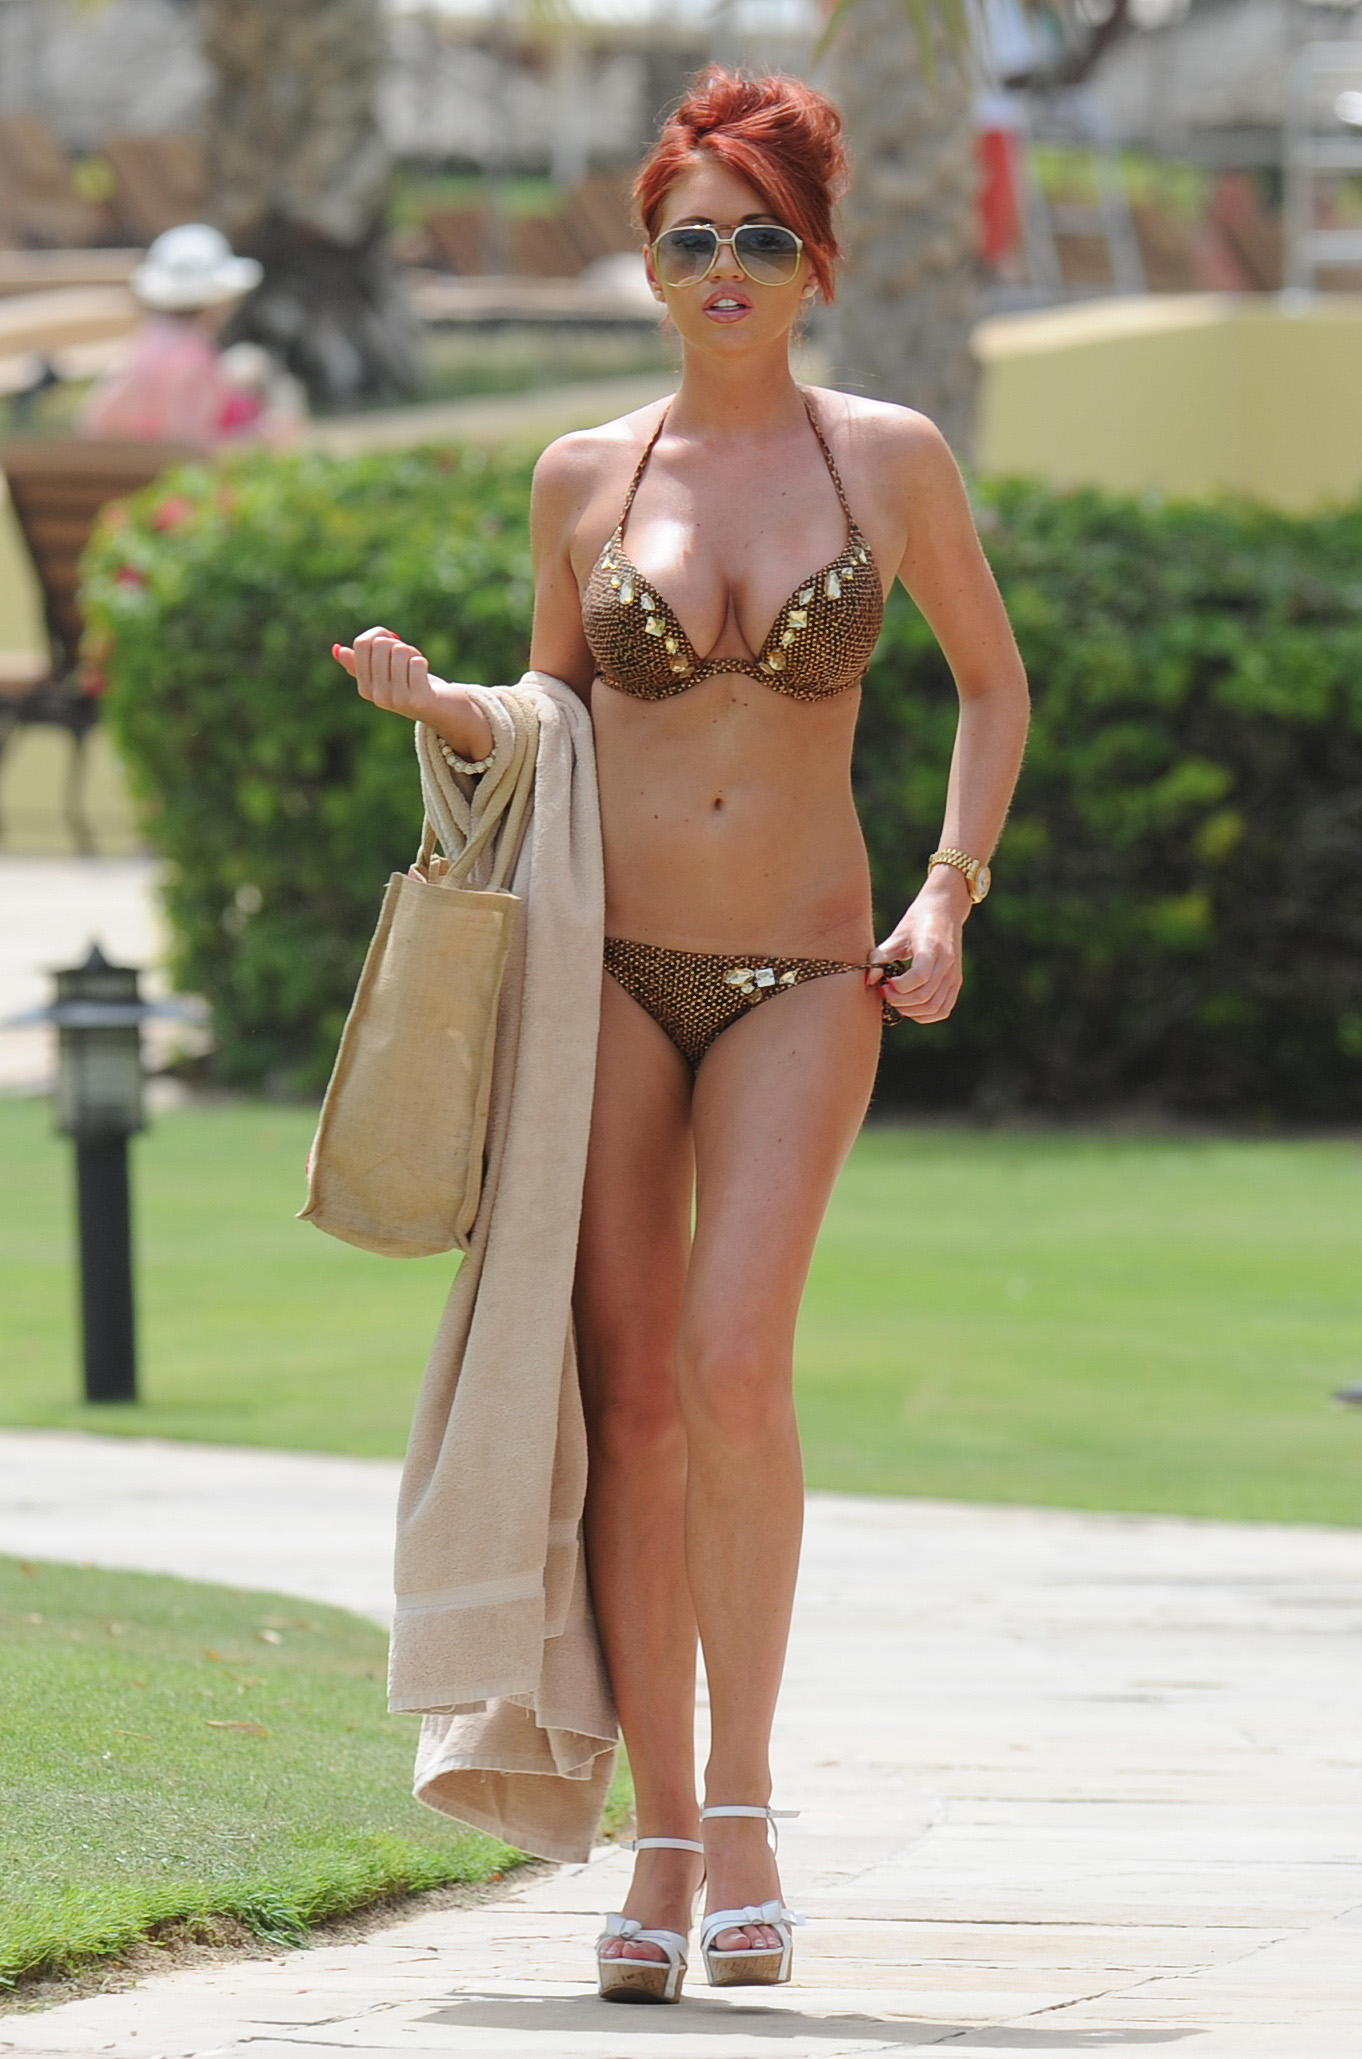 Celebrites Amy Childs nudes (63 photos), Pussy, Fappening, Feet, legs 2006